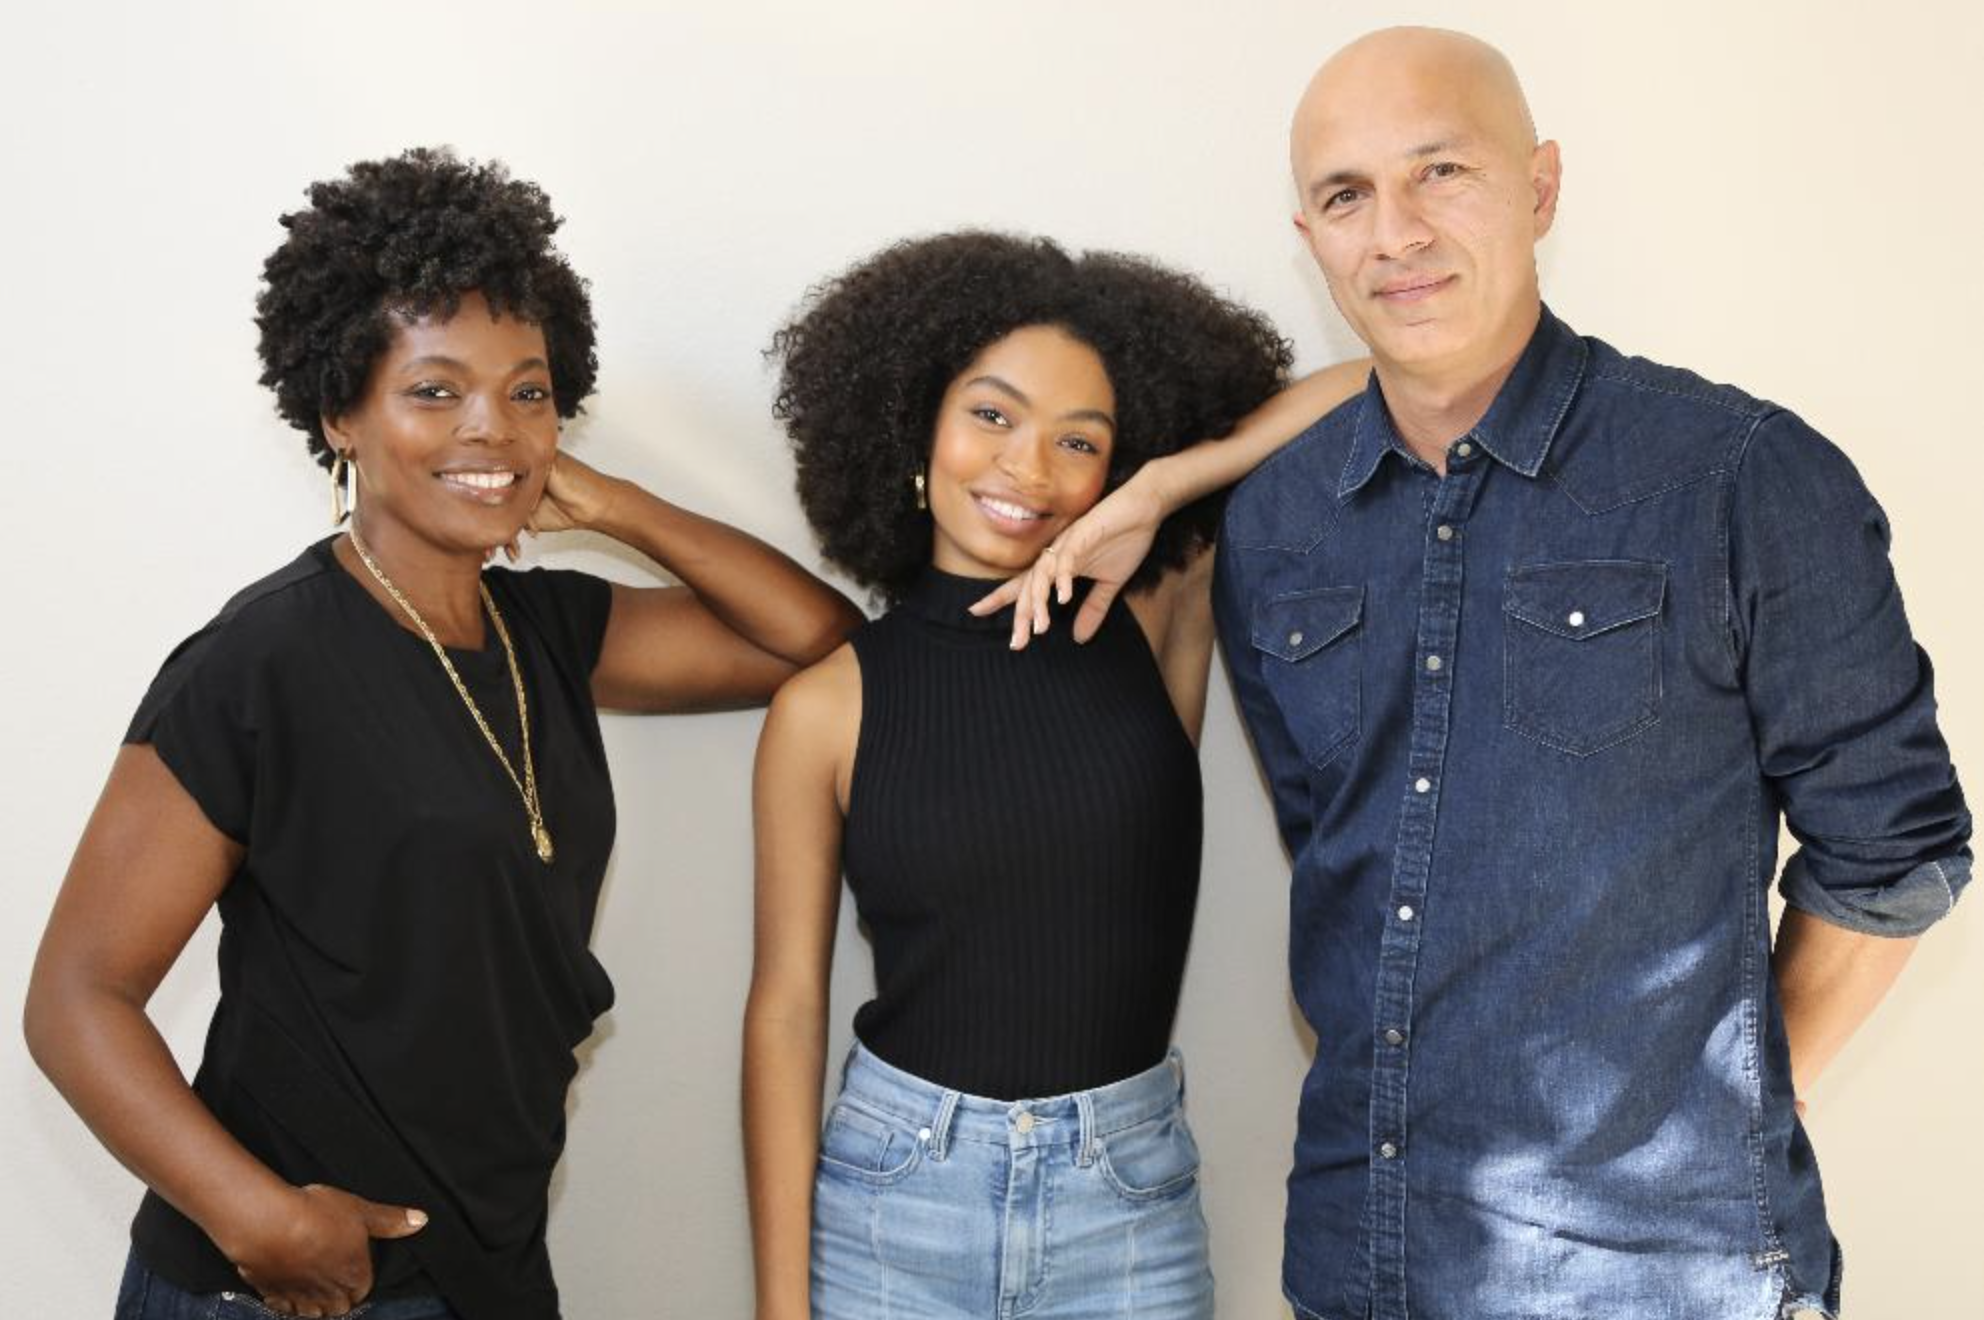 "THE FAMILY SHAHIDI   WHEN ACTOR YARA SHAHIDI TURNED 16, HER PARENTS WERE INFORMED THAT THEY NO LONGER HAD TO SUPERVISE HER ON THE SET OF THE ABC SITCOM   BLACK-ISH  , ON WHICH SHE HAS STARRED SINCE AGE 14. HER MOTHER KERI SHAHIDI WASN'T HAVING IT. ""FOR US TO PROVIDE YOU WITH A HAPPY, HEALTHY, WELL-ROUNDED HUMAN BEING, THIS IS WHAT WE DO,"" SHE REMEMBERS RESPONDING. THE WHOLE ENDEAVOR HAS BEEN A FAMILY EFFORT, AND ALL THREE SHAHIDIS—YARA, KERI AND FATHER AFSHIN SHAHIDI—SAT DOWN WITH TIME TO TALK ABOUT HOW THEY WORK AS A TEAM TO SUPPORT YARA IN HOLLYWOOD, THEIR RESPONSE TO SEXUAL HARASSMENT WITHIN THE INDUSTRY AND YARA'S FORTHCOMING TRANSITION INTO A NEW ROLE:  COLLEGE STUDENT  AT HARVARD."